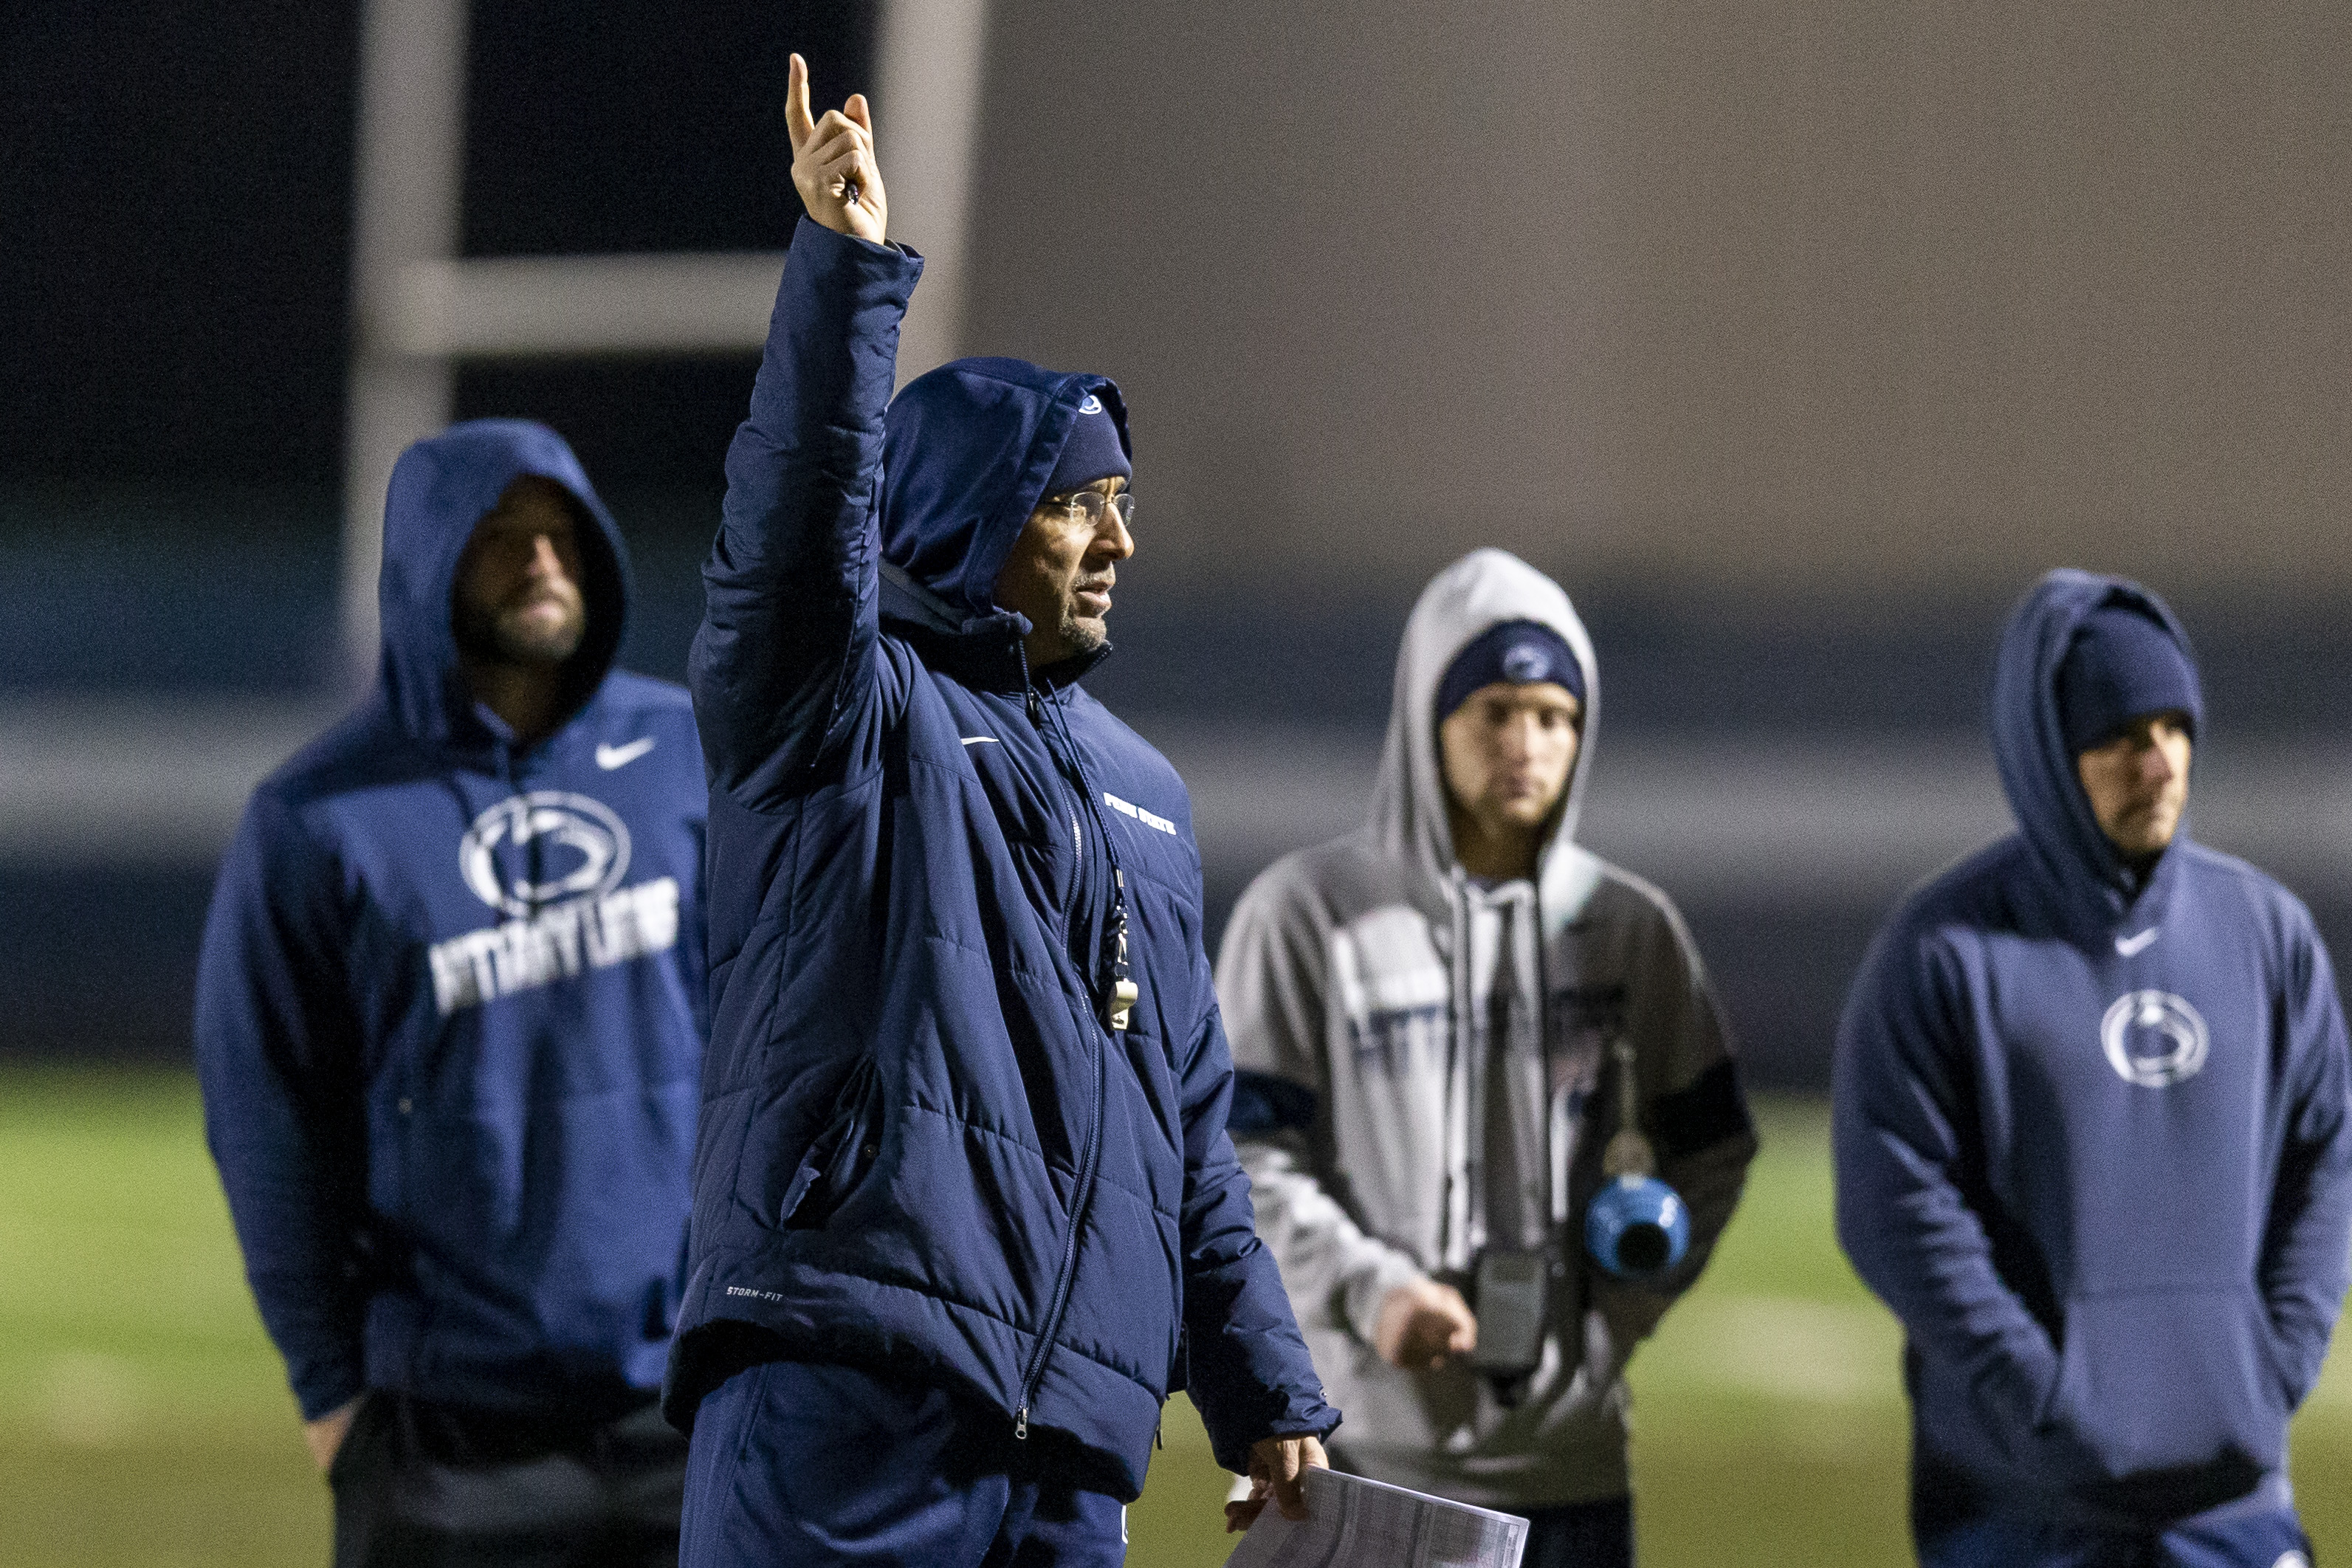 Penn State's James Franklin discusses some of the challenges of interacting with the Nittany Lions' spirited fan base